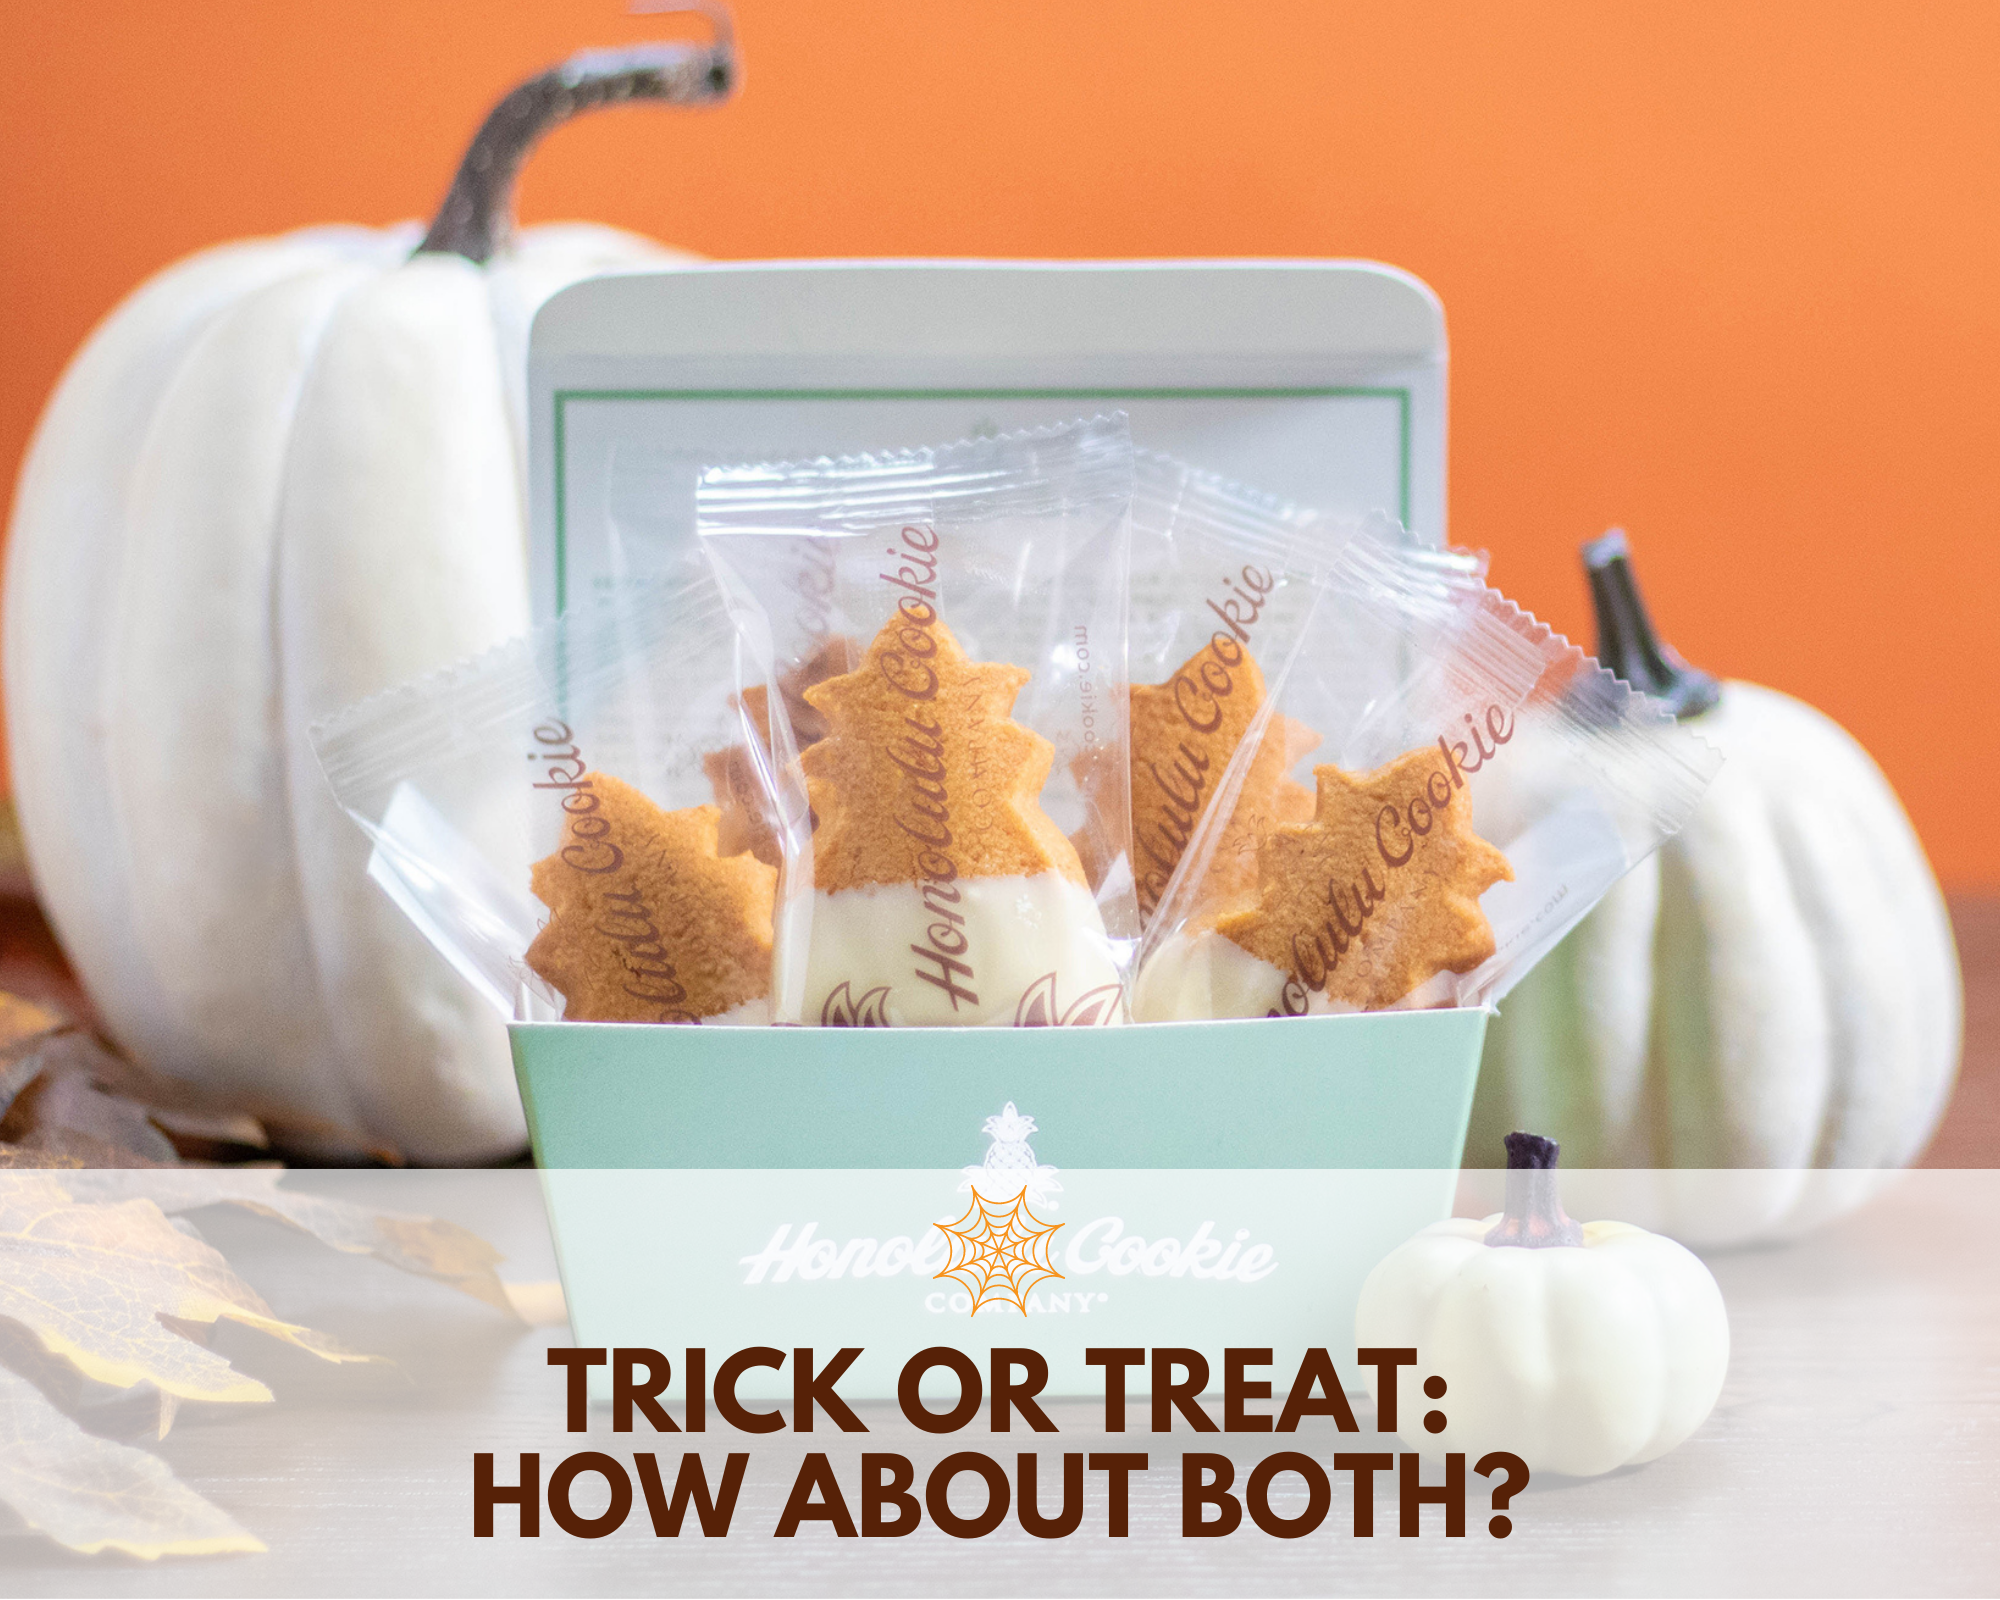 Trick or Treat: How About Both?